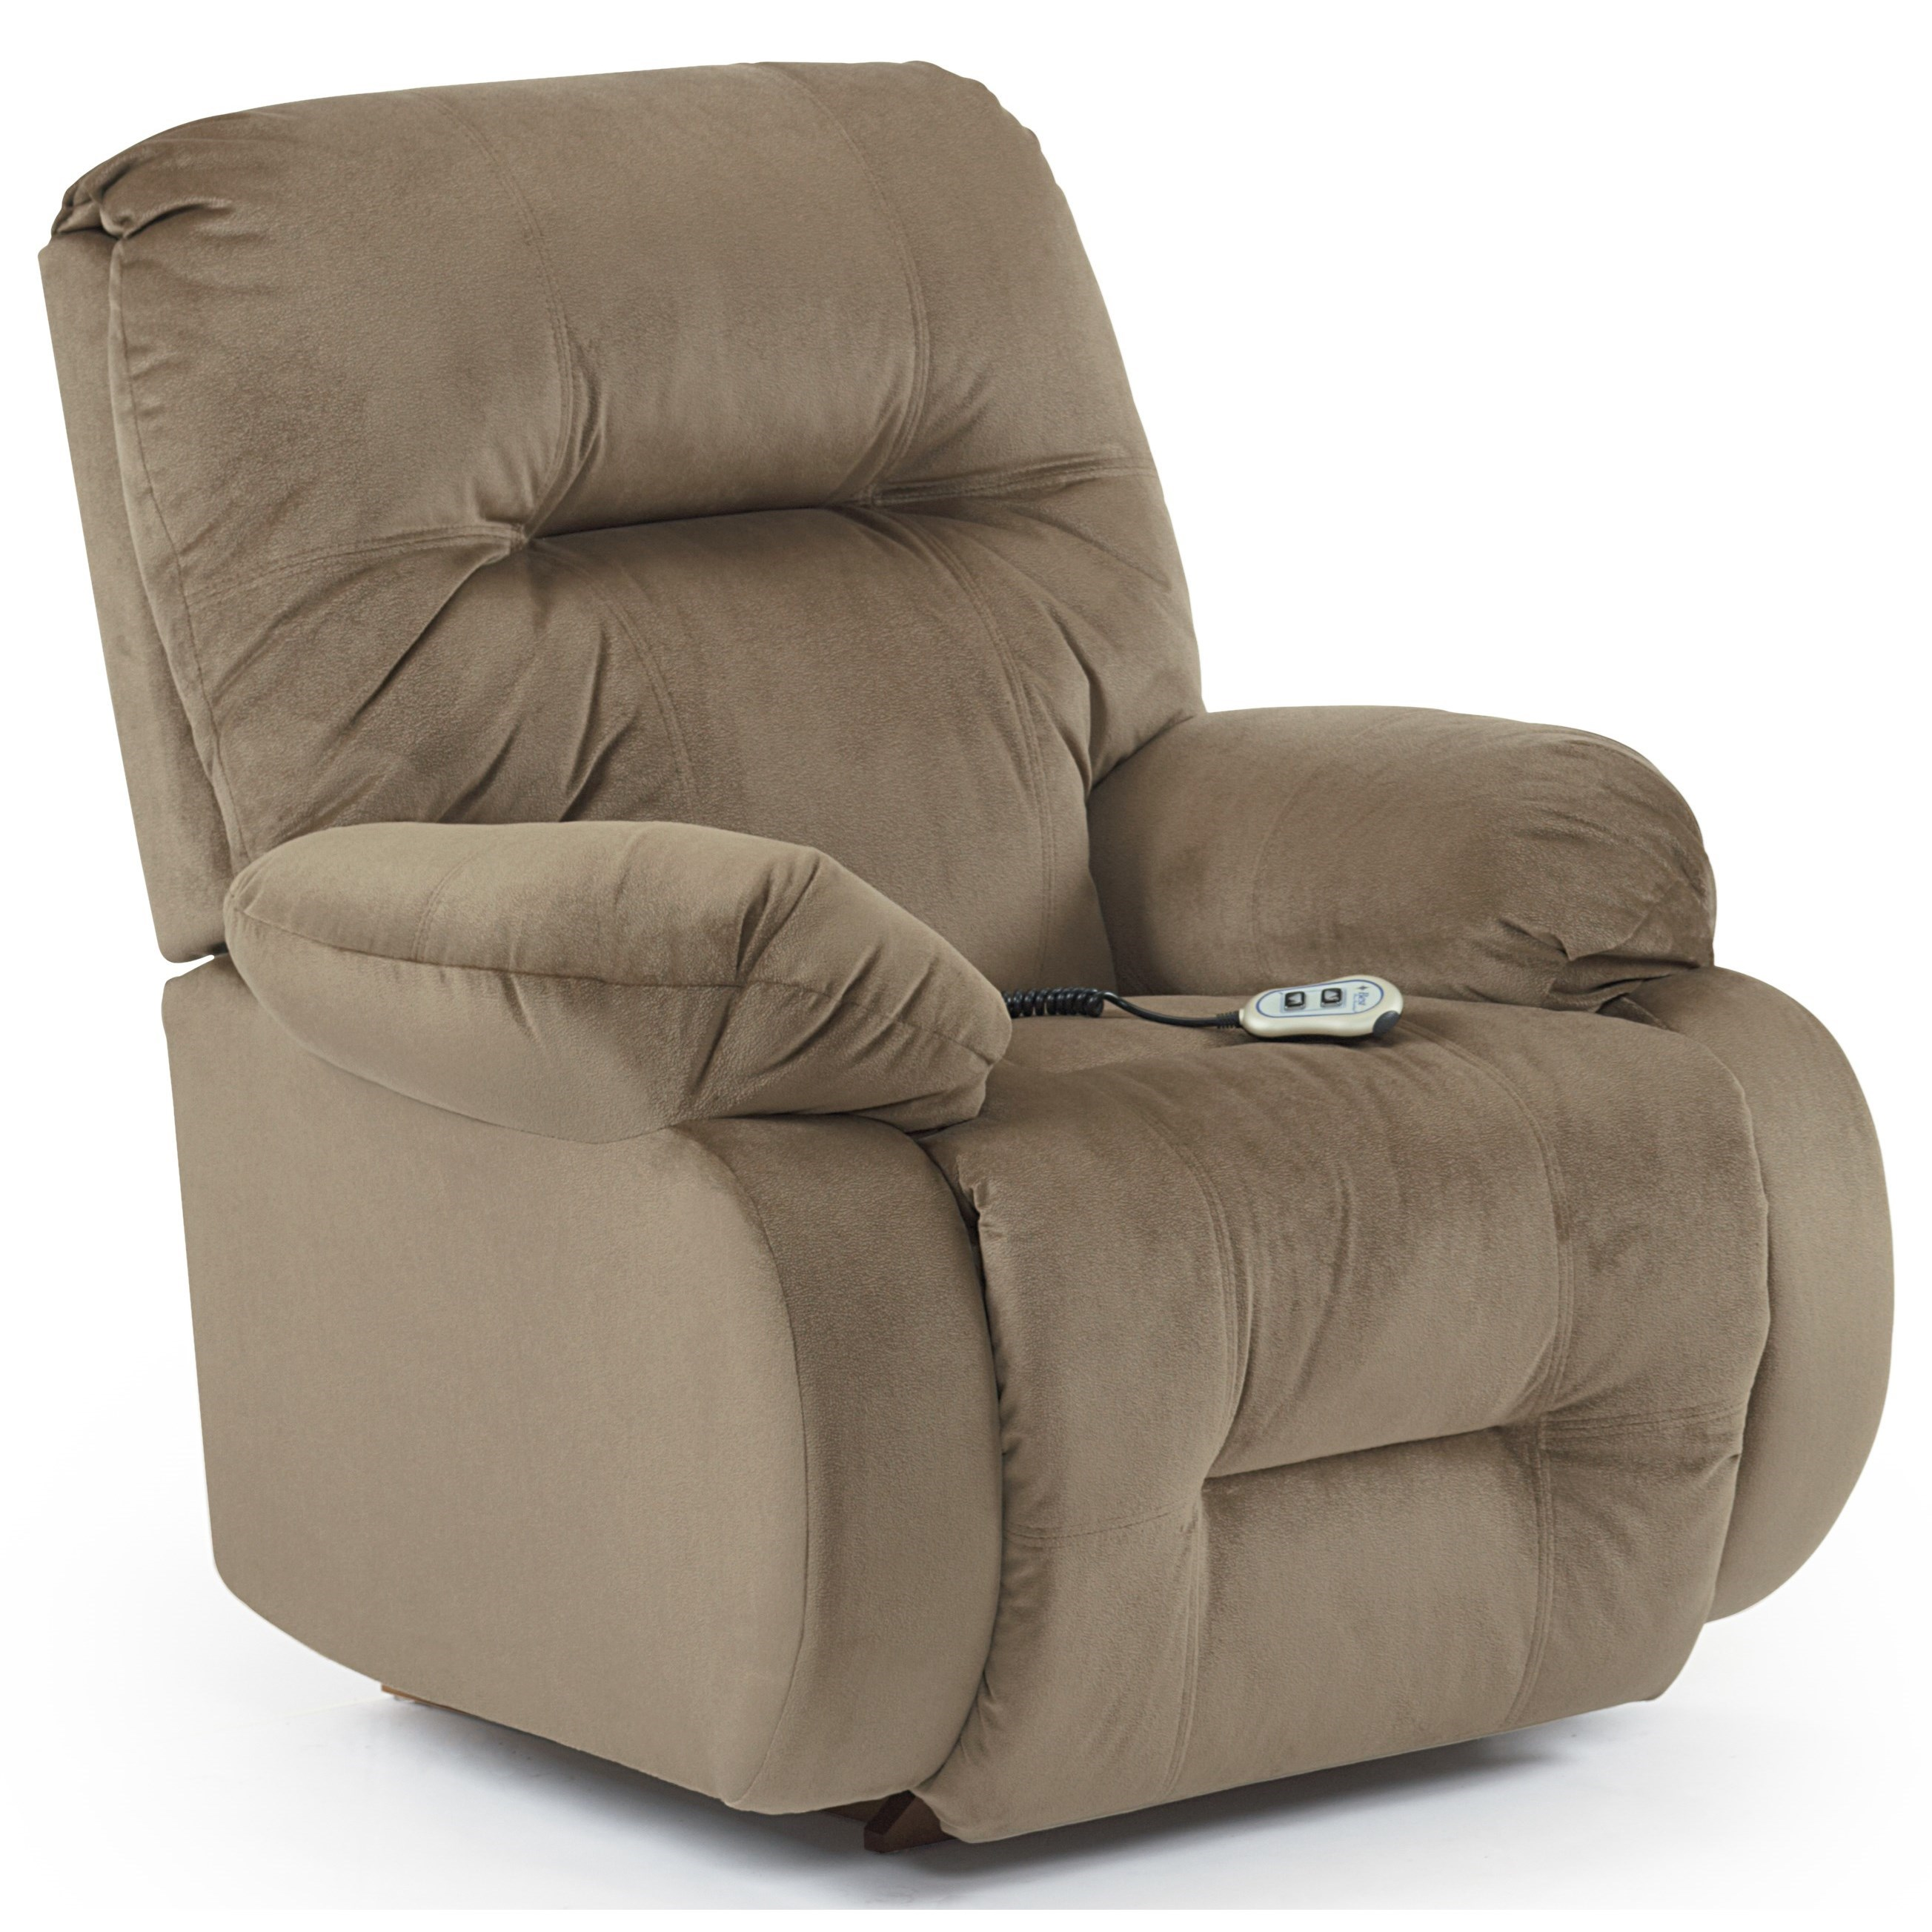 Best Home Furnishings Recliners - Medium Brinley Power Lift Recliner - Item Number: 8MW81